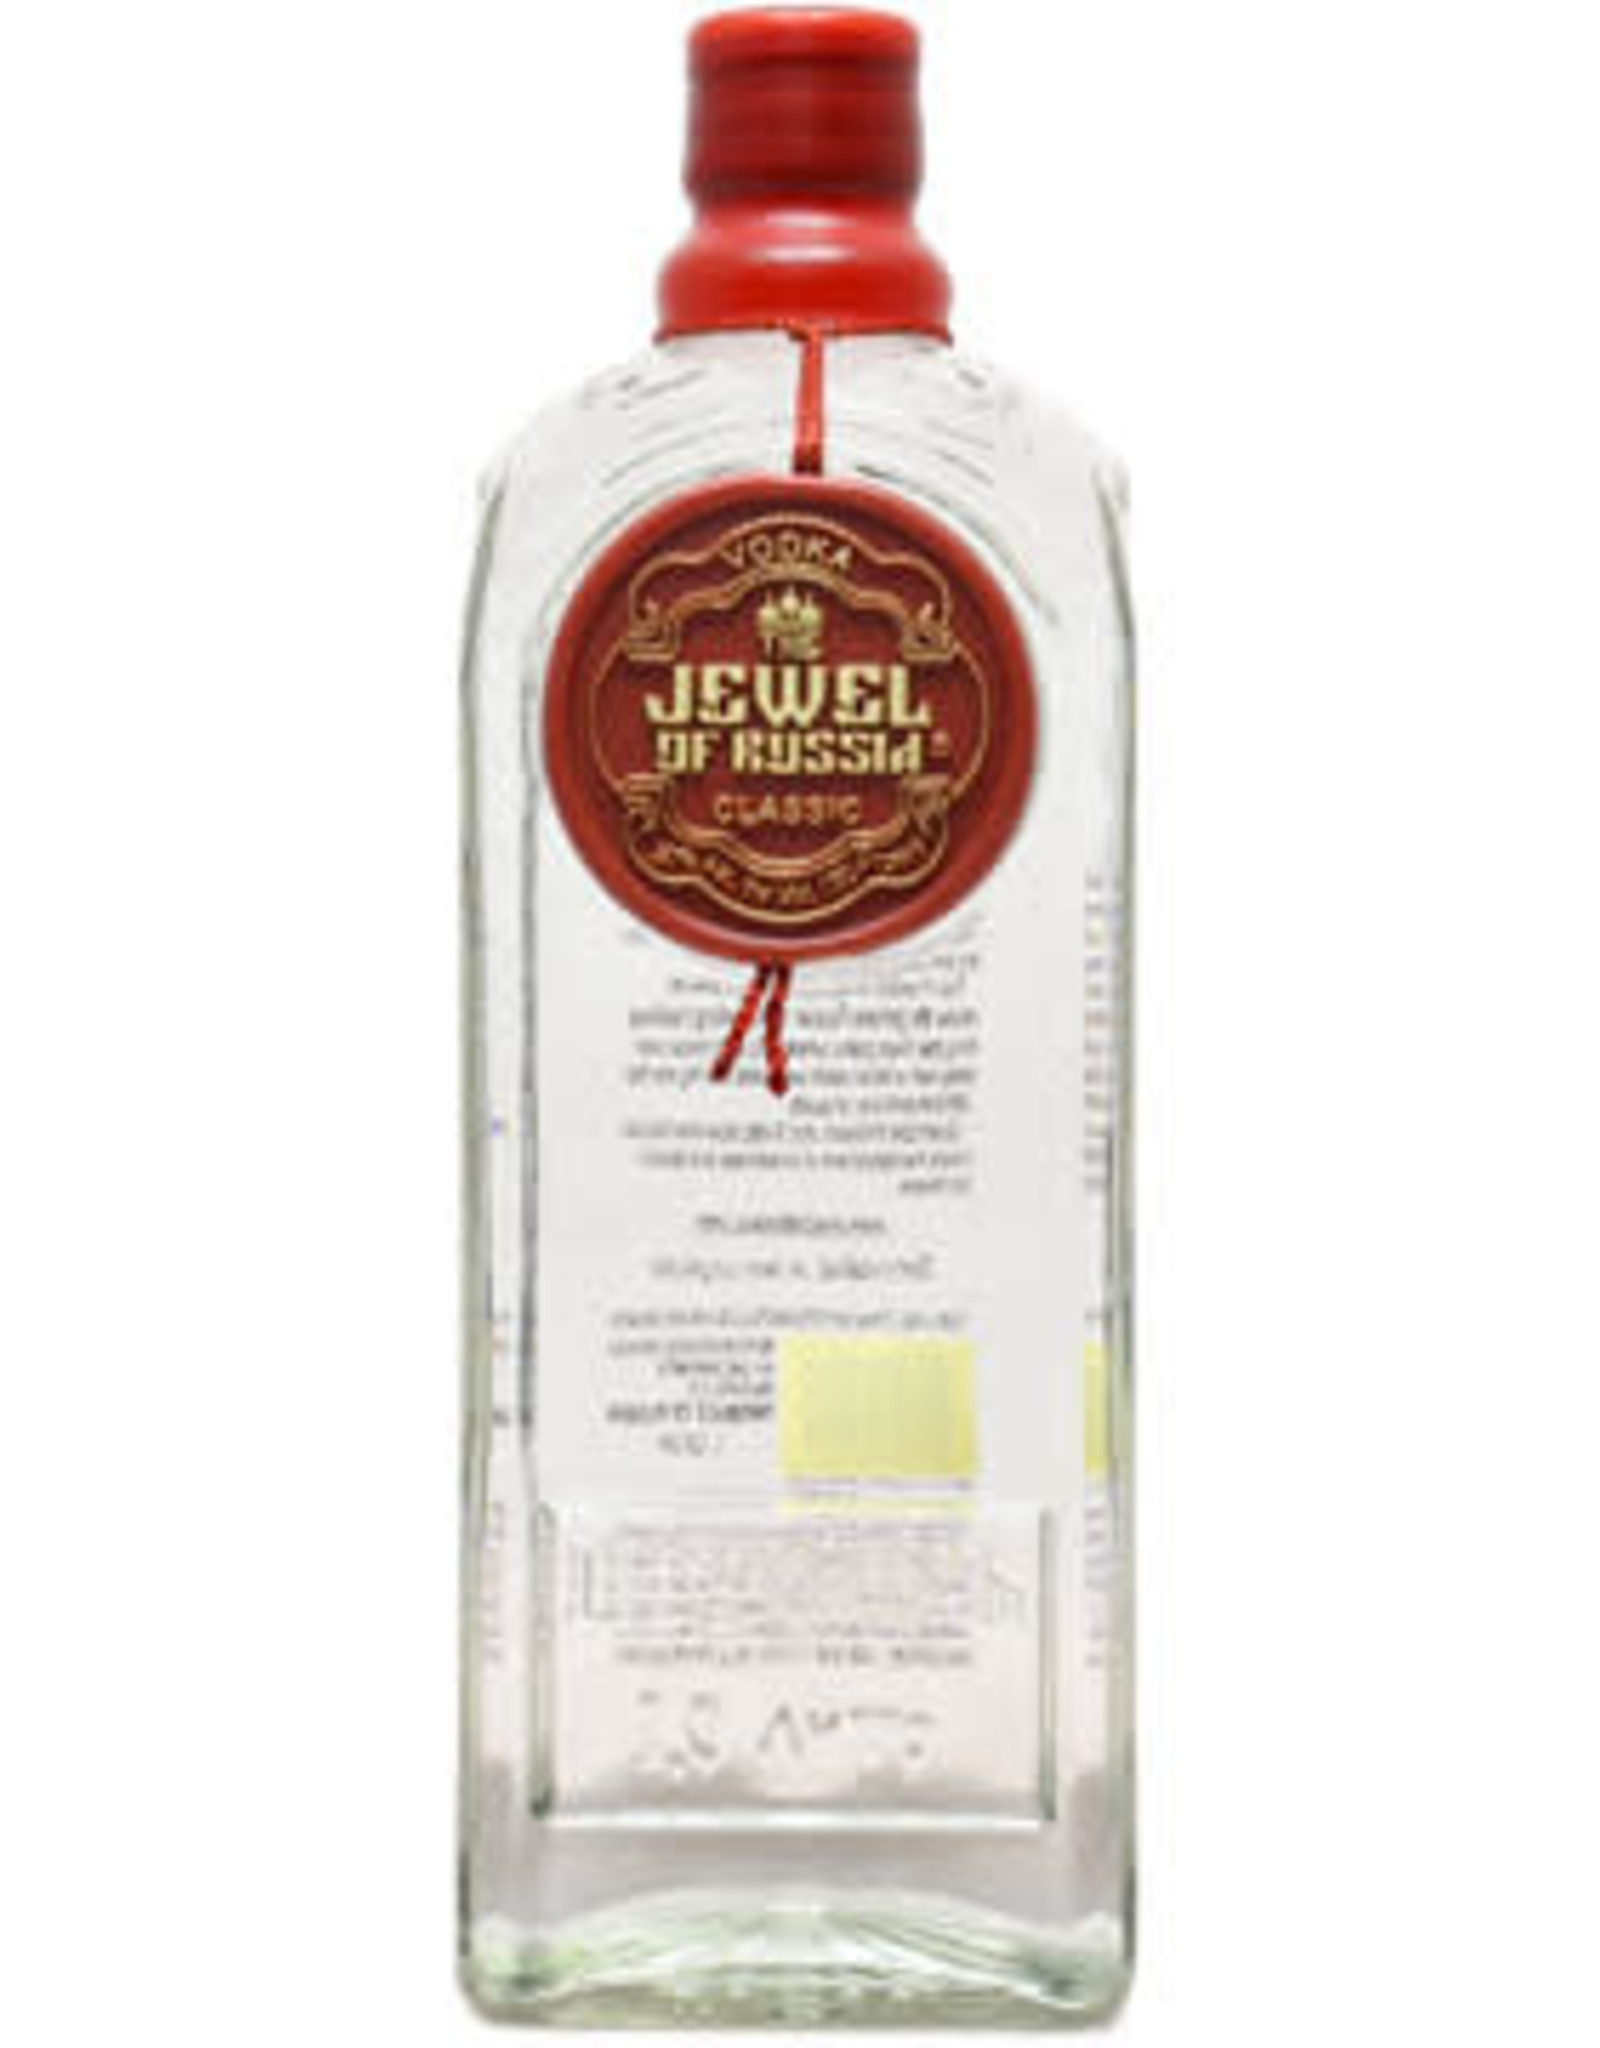 The Jewell of Russia Vodka Classic